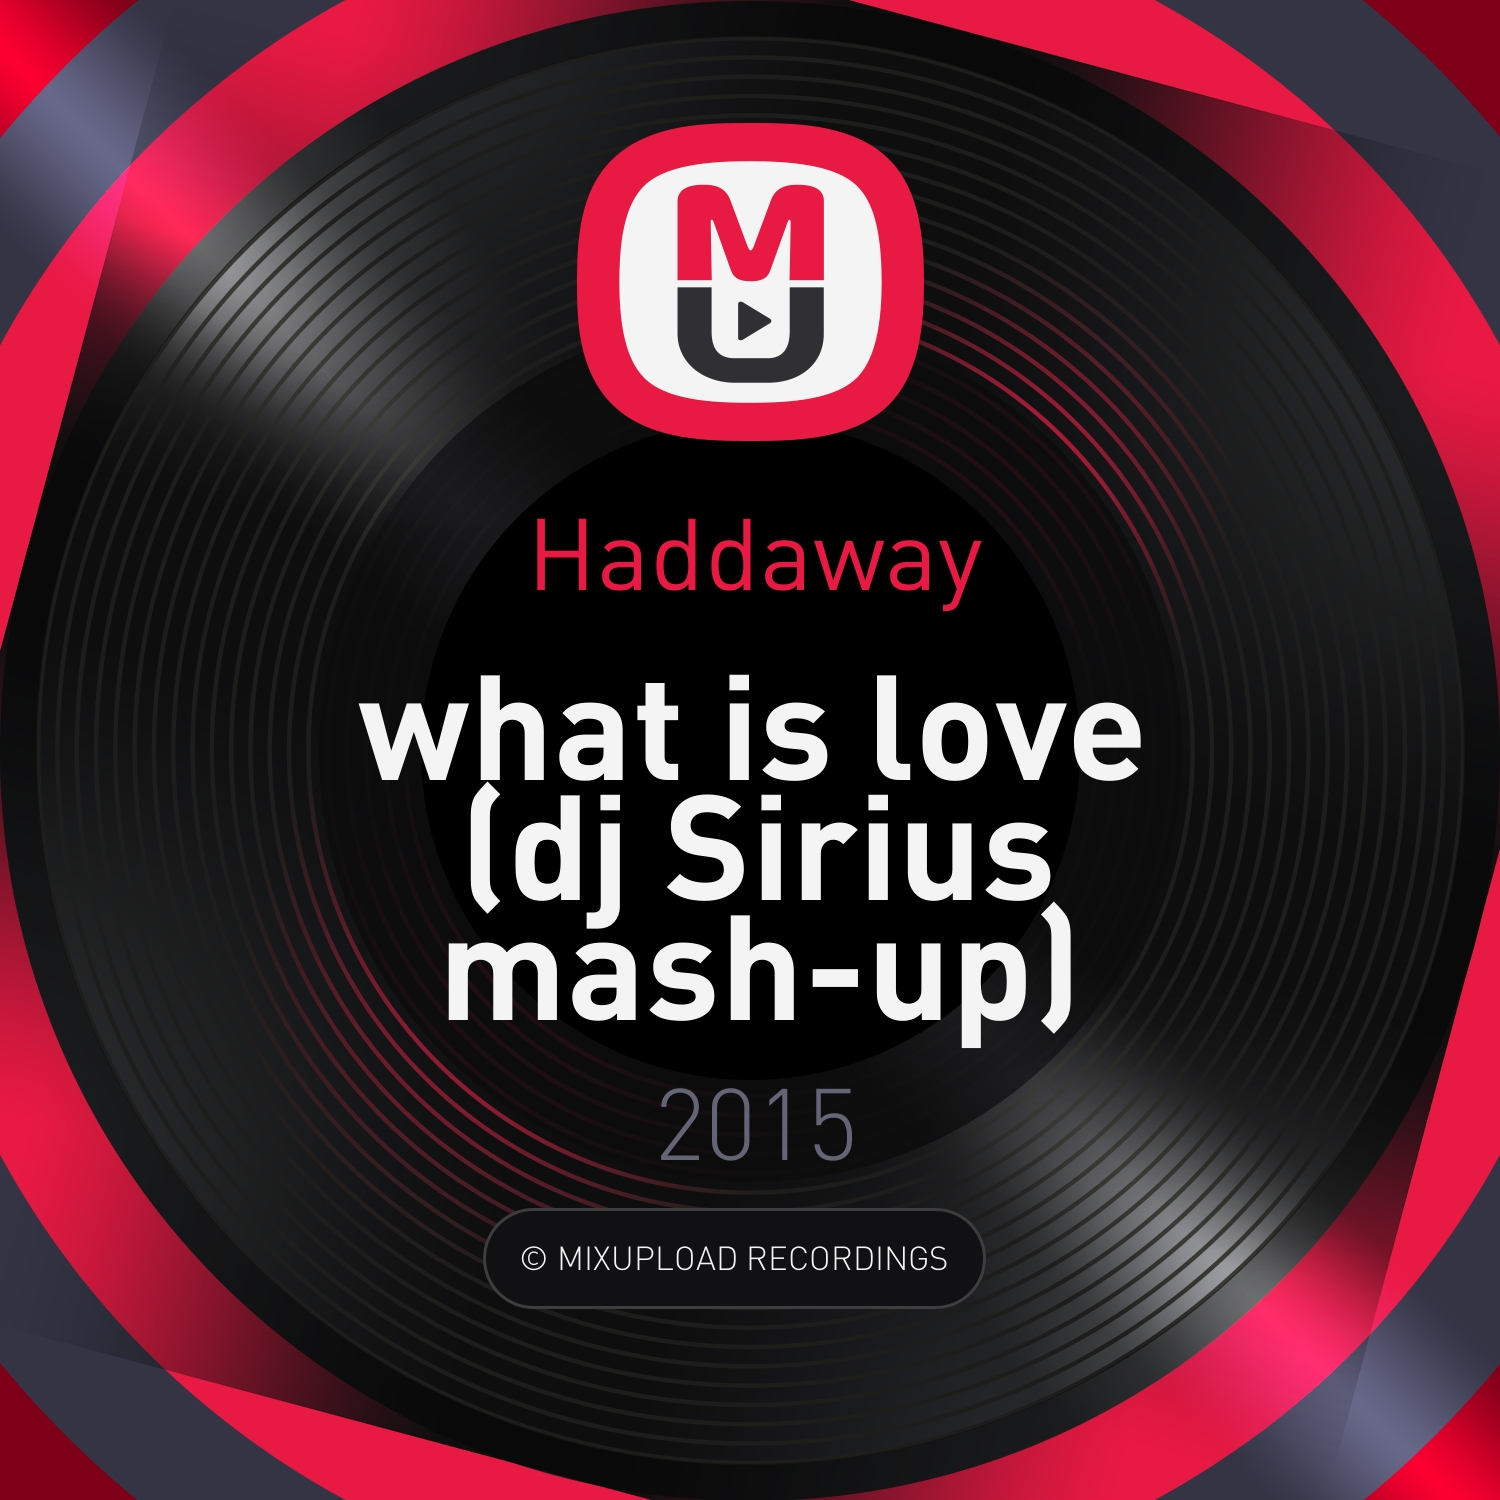 Haddaway - What is Love (dj Sirius mash-up) (dj Sirius mash-up )